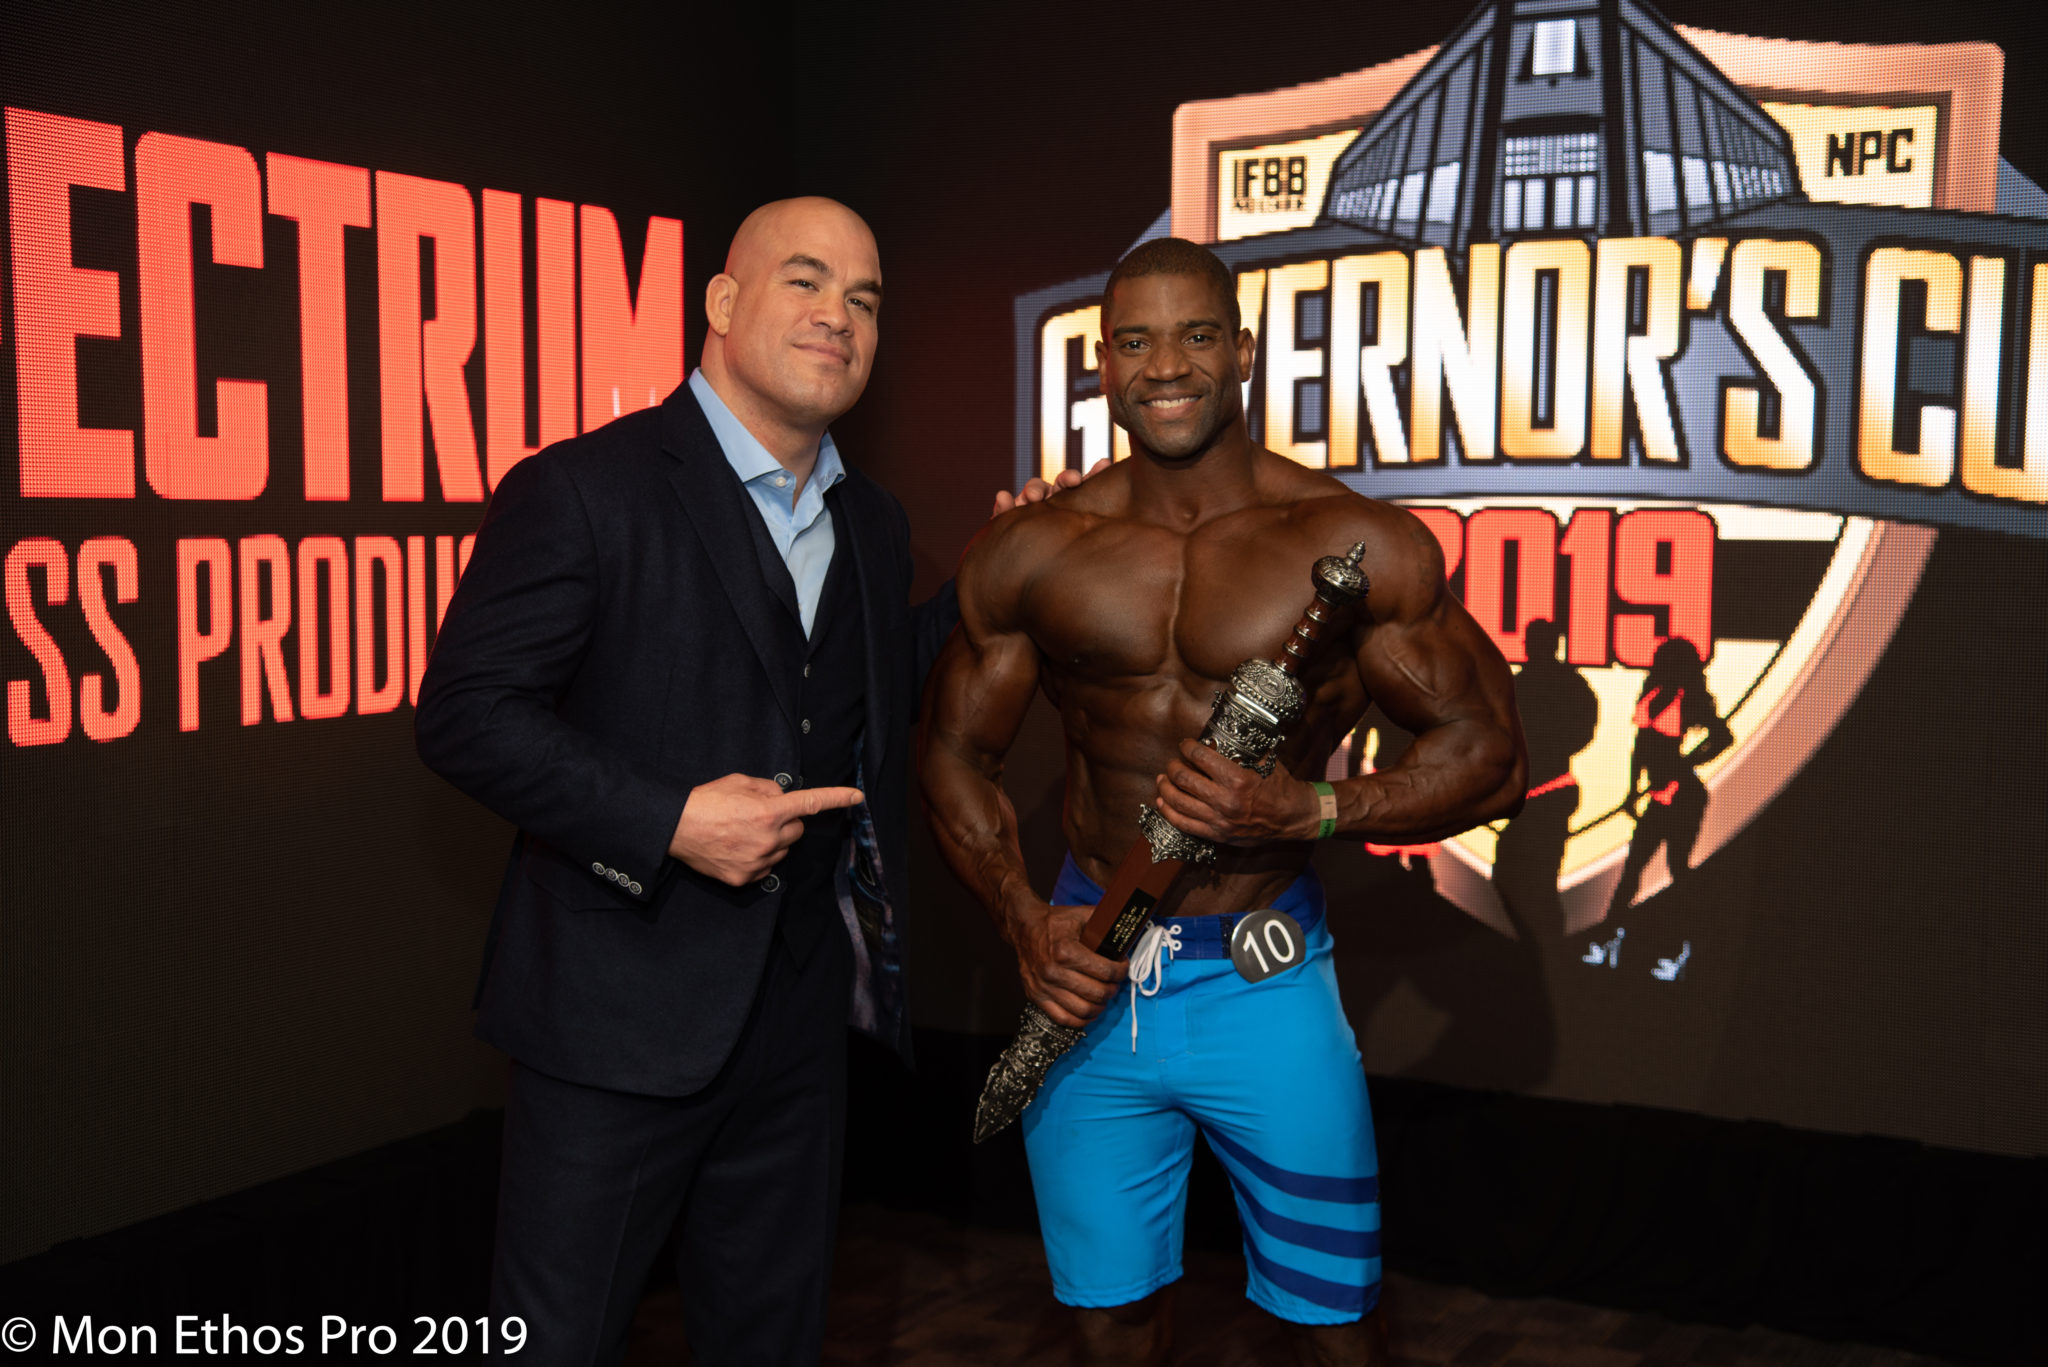 2019 IFBB PRO LEAGUE/NPC Governors Cup with special Mon Ethos Pro guest Tito Ortiz.